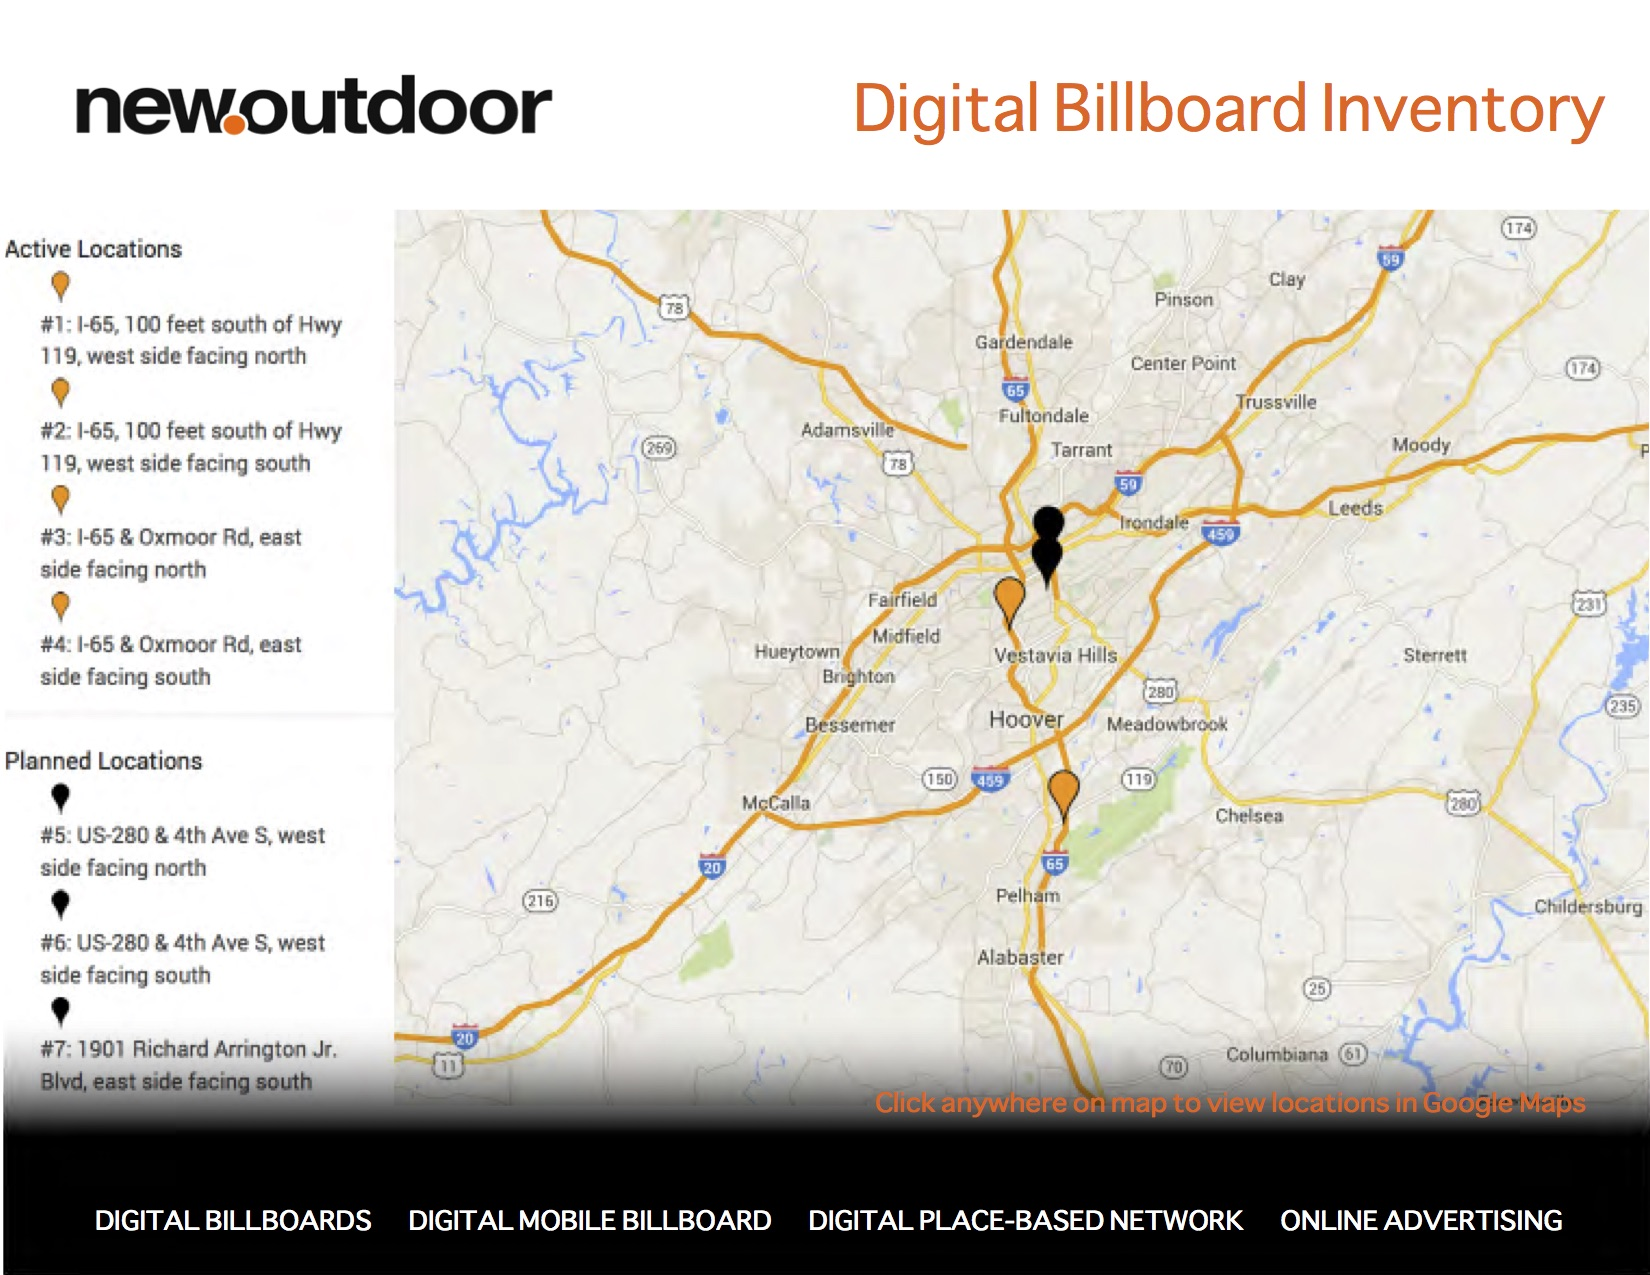 New Point Outdoor - Digital Billboard Inventory